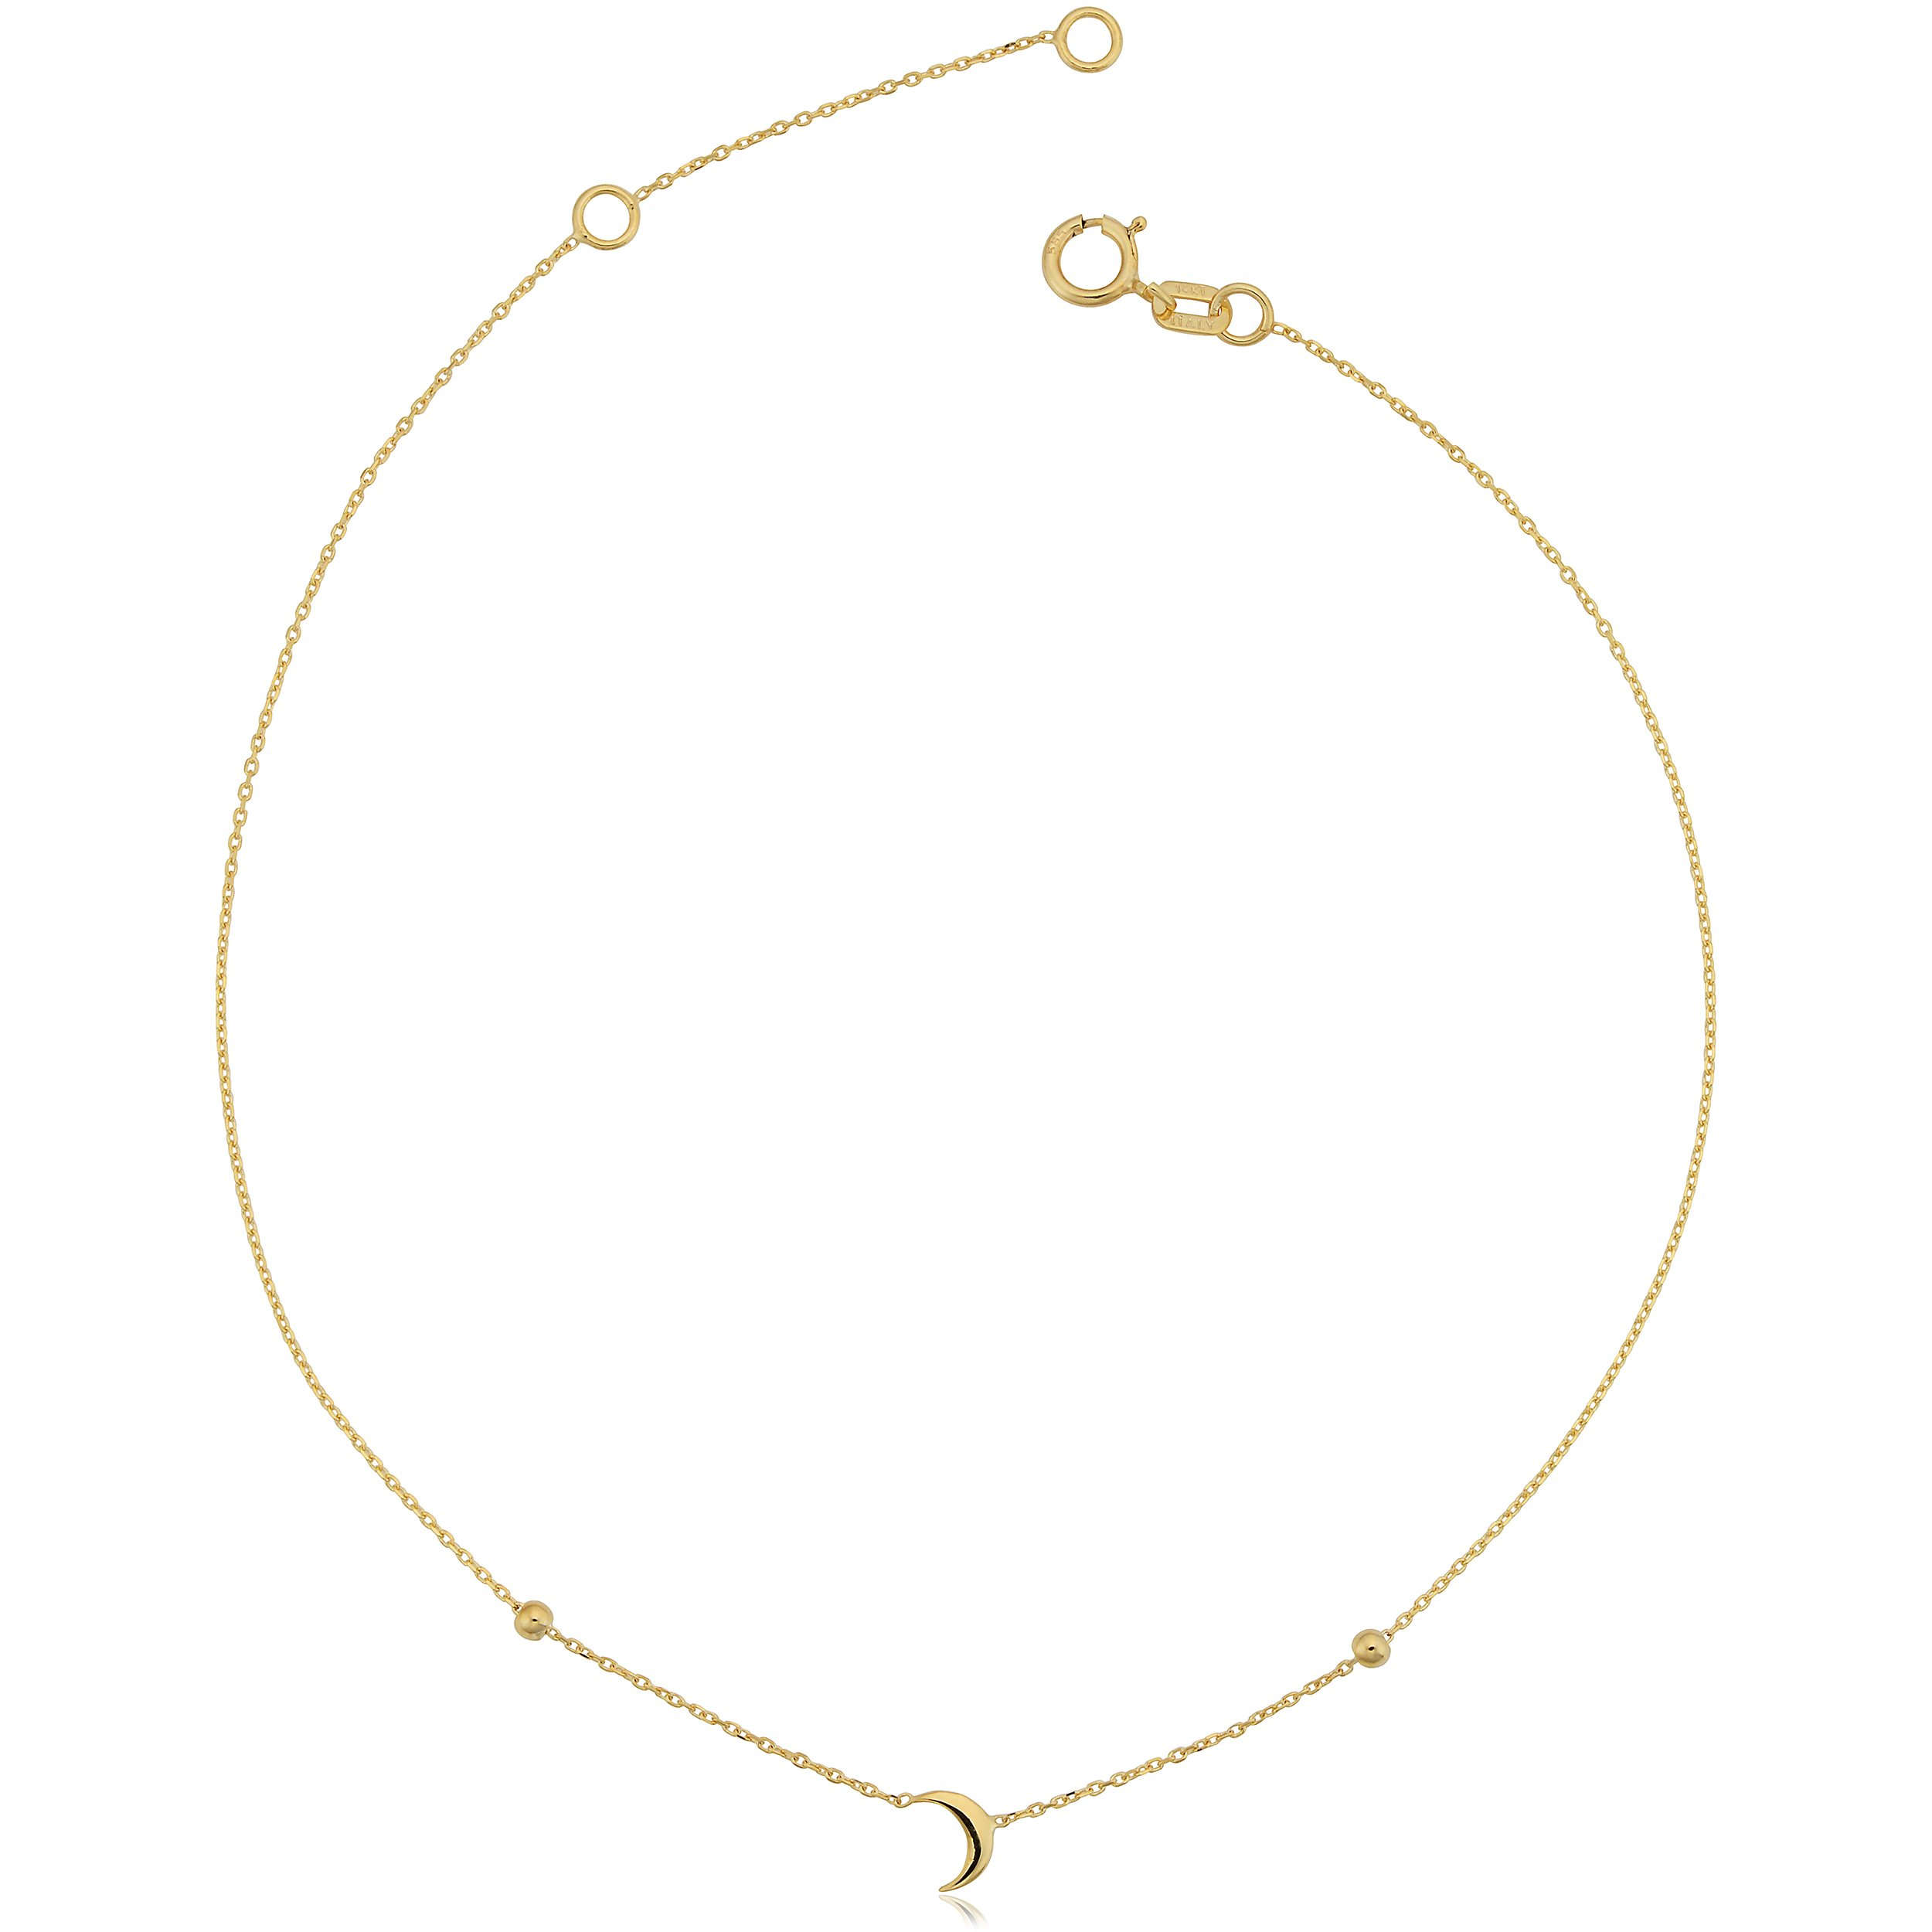 14k Yellow Gold Crescent Moon Adjustable Length Anklet (fits 9'' or 10'')